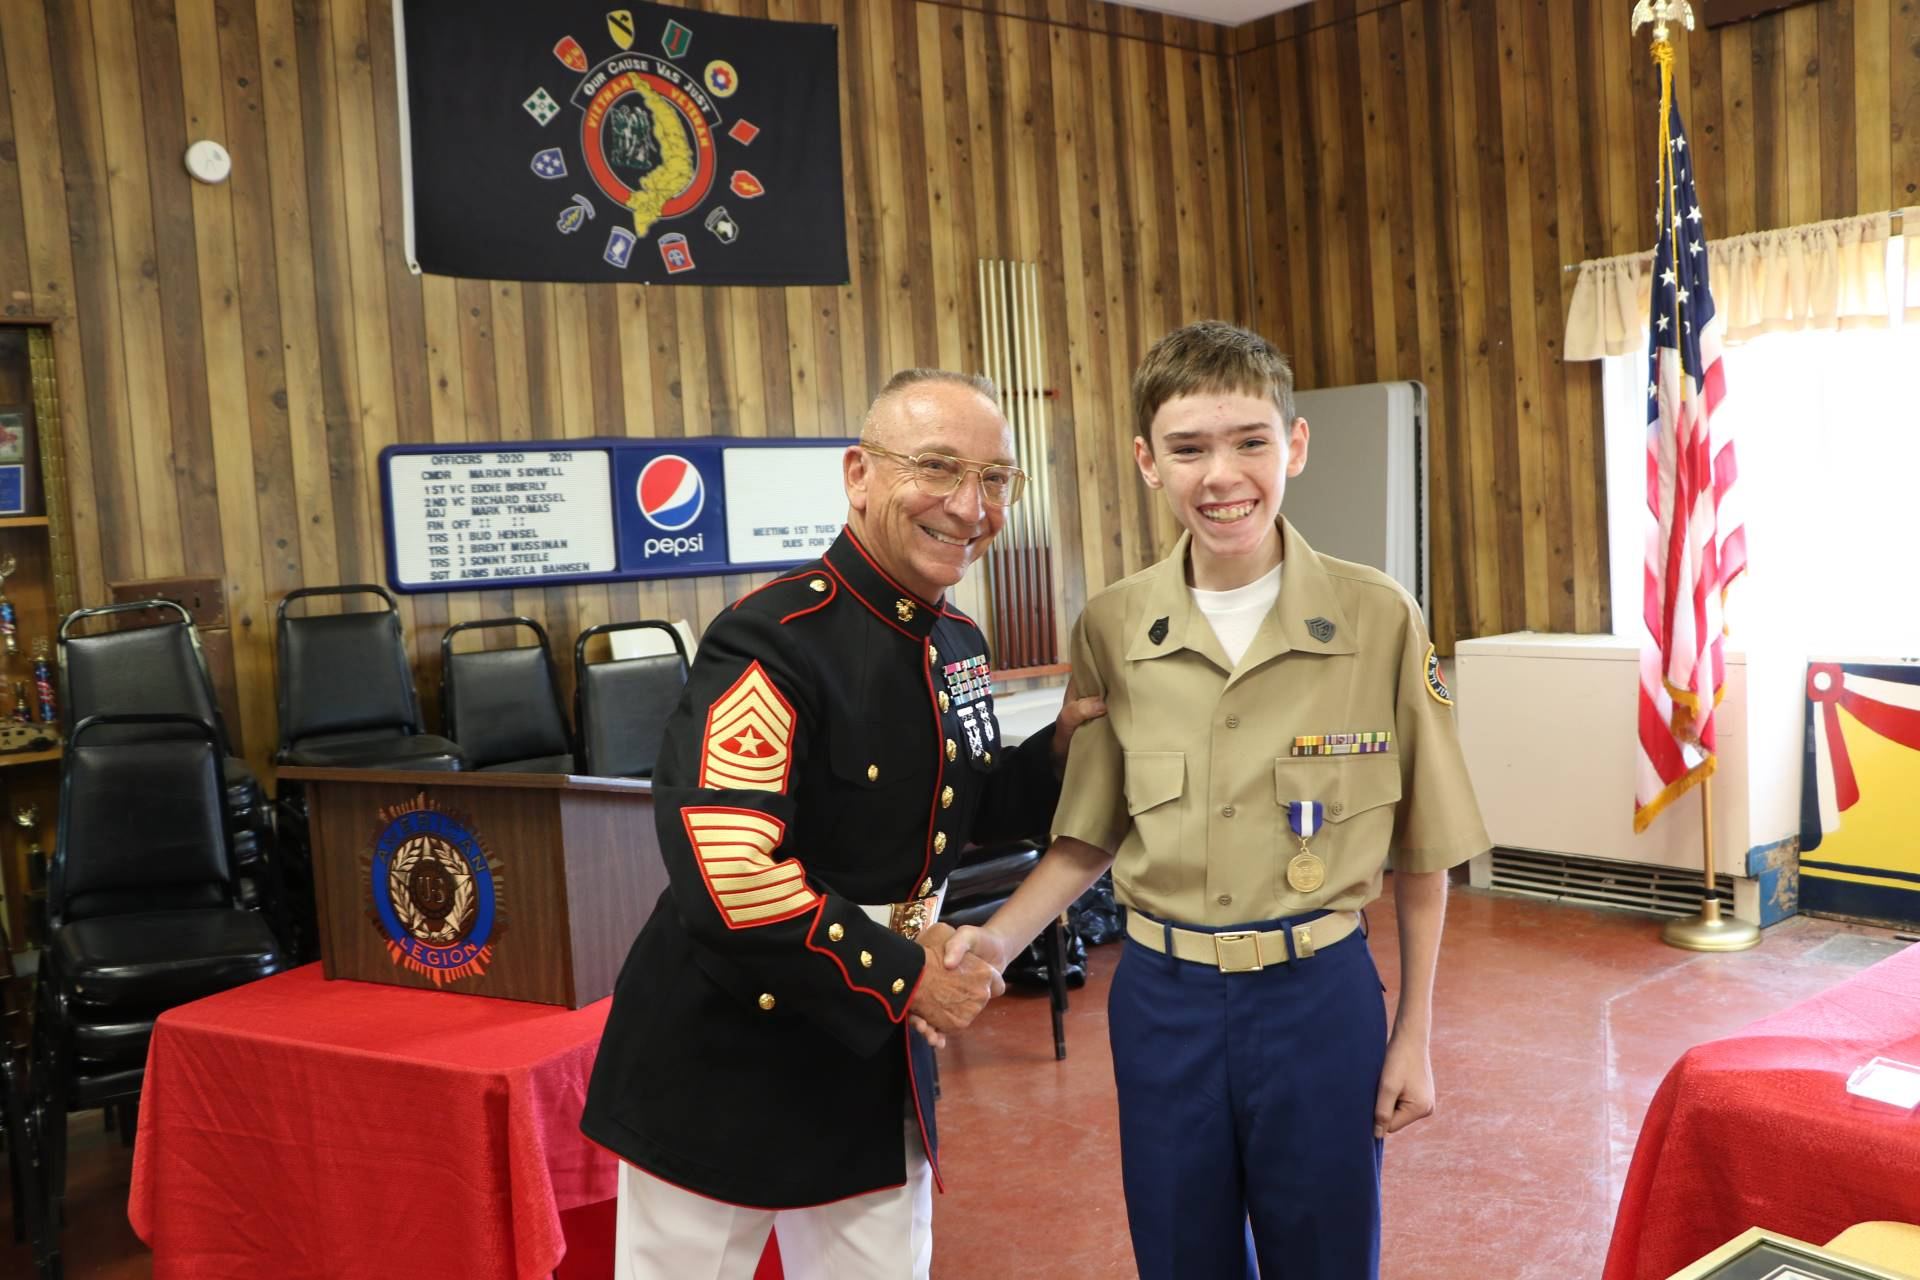 Cadet William Verne receives the Non Commissioned Officers Association Award